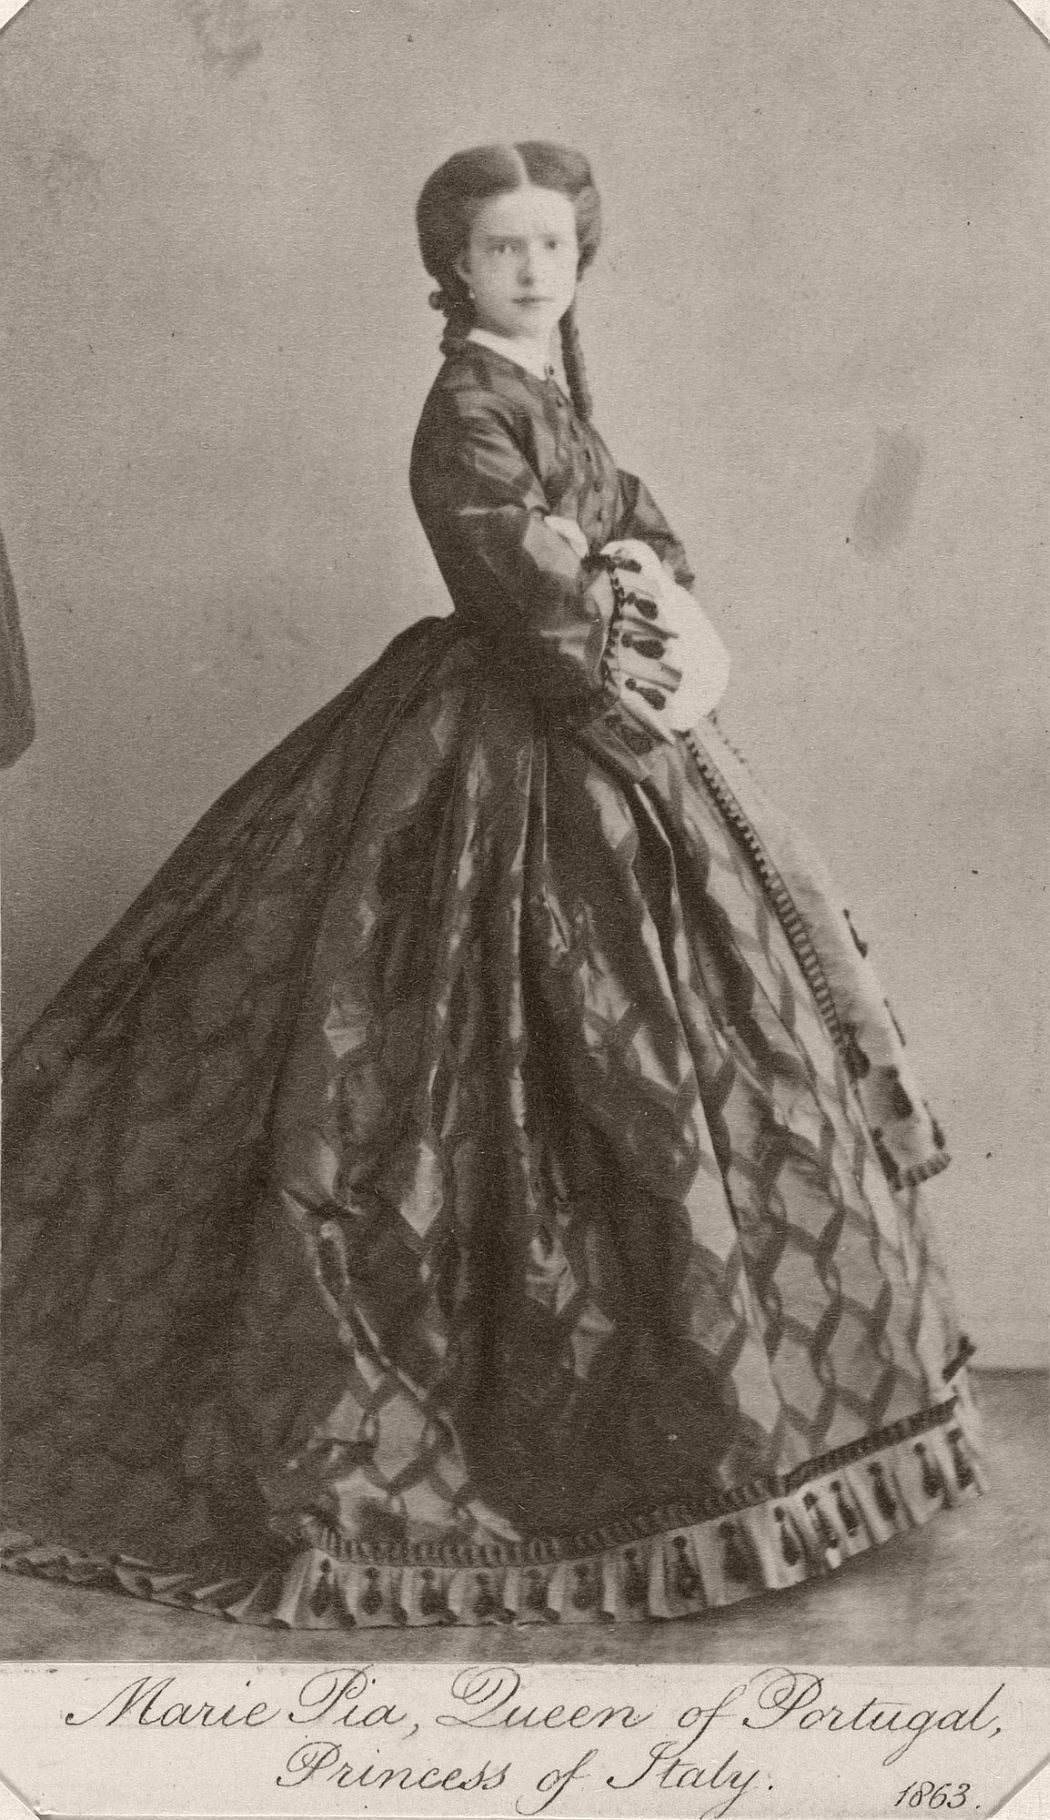 Photograph of Queen Maria Pia of Portugal, Princess of Italy, 1863.